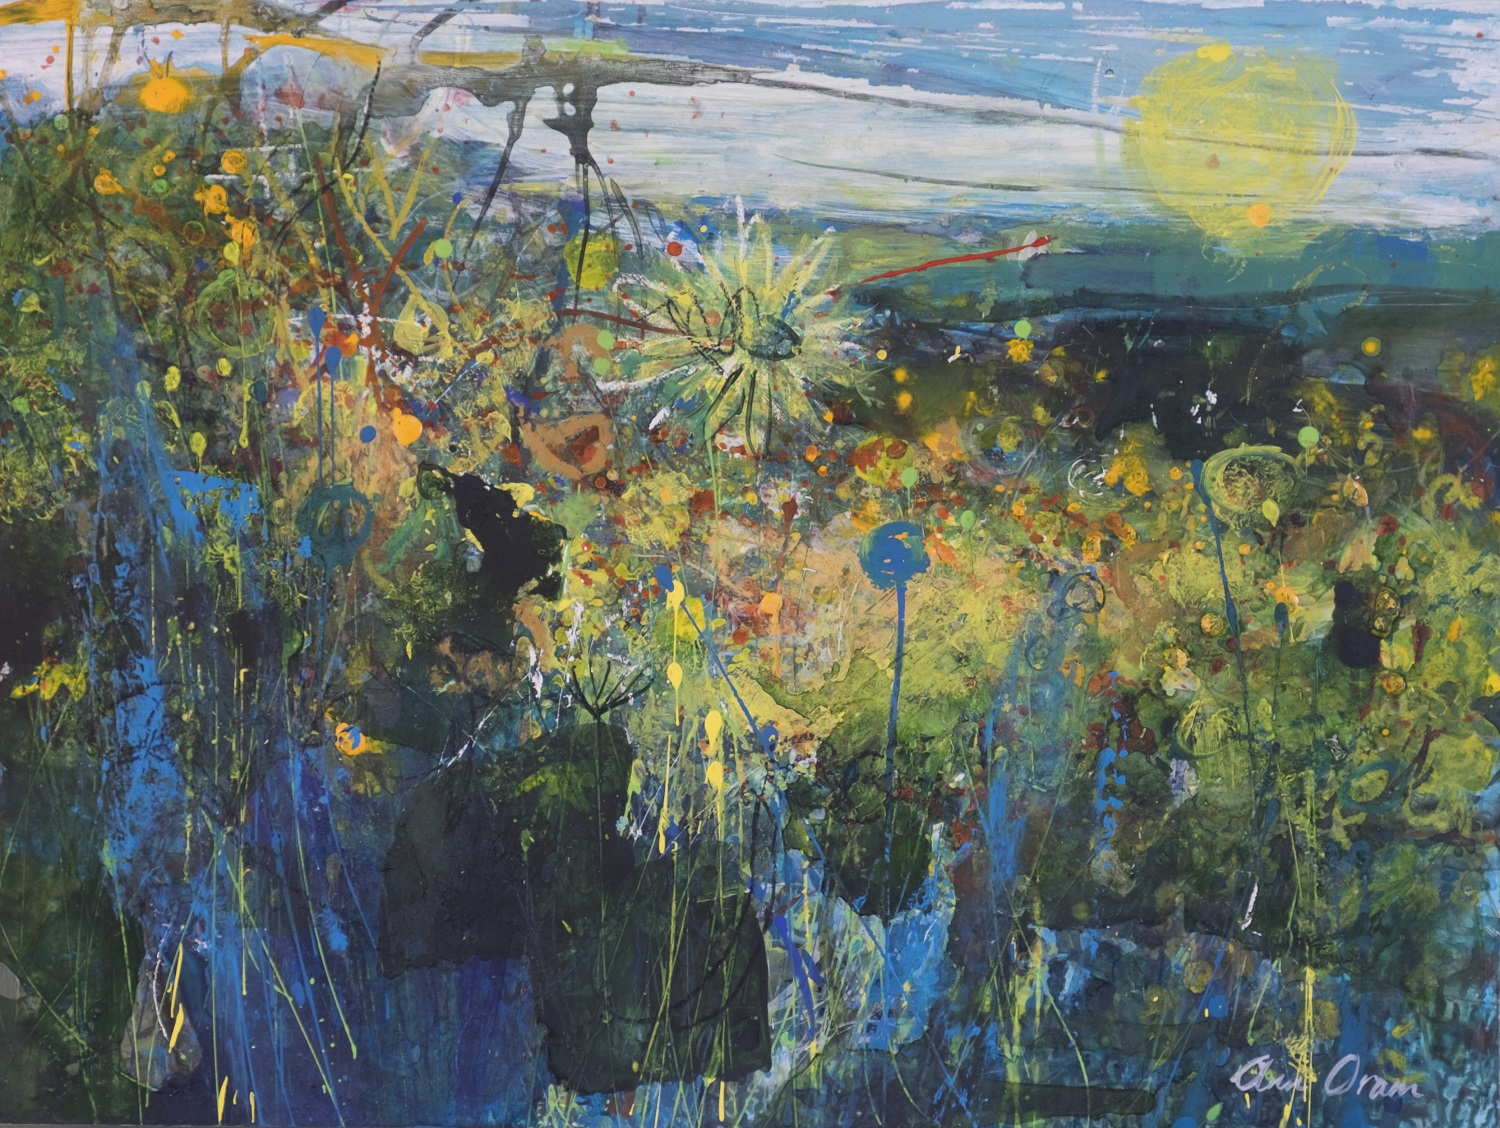 'Miss Jekyll's Garden on Holy Island' Ann Oram   Acrylic and ink on board, 31x41cm, 2017